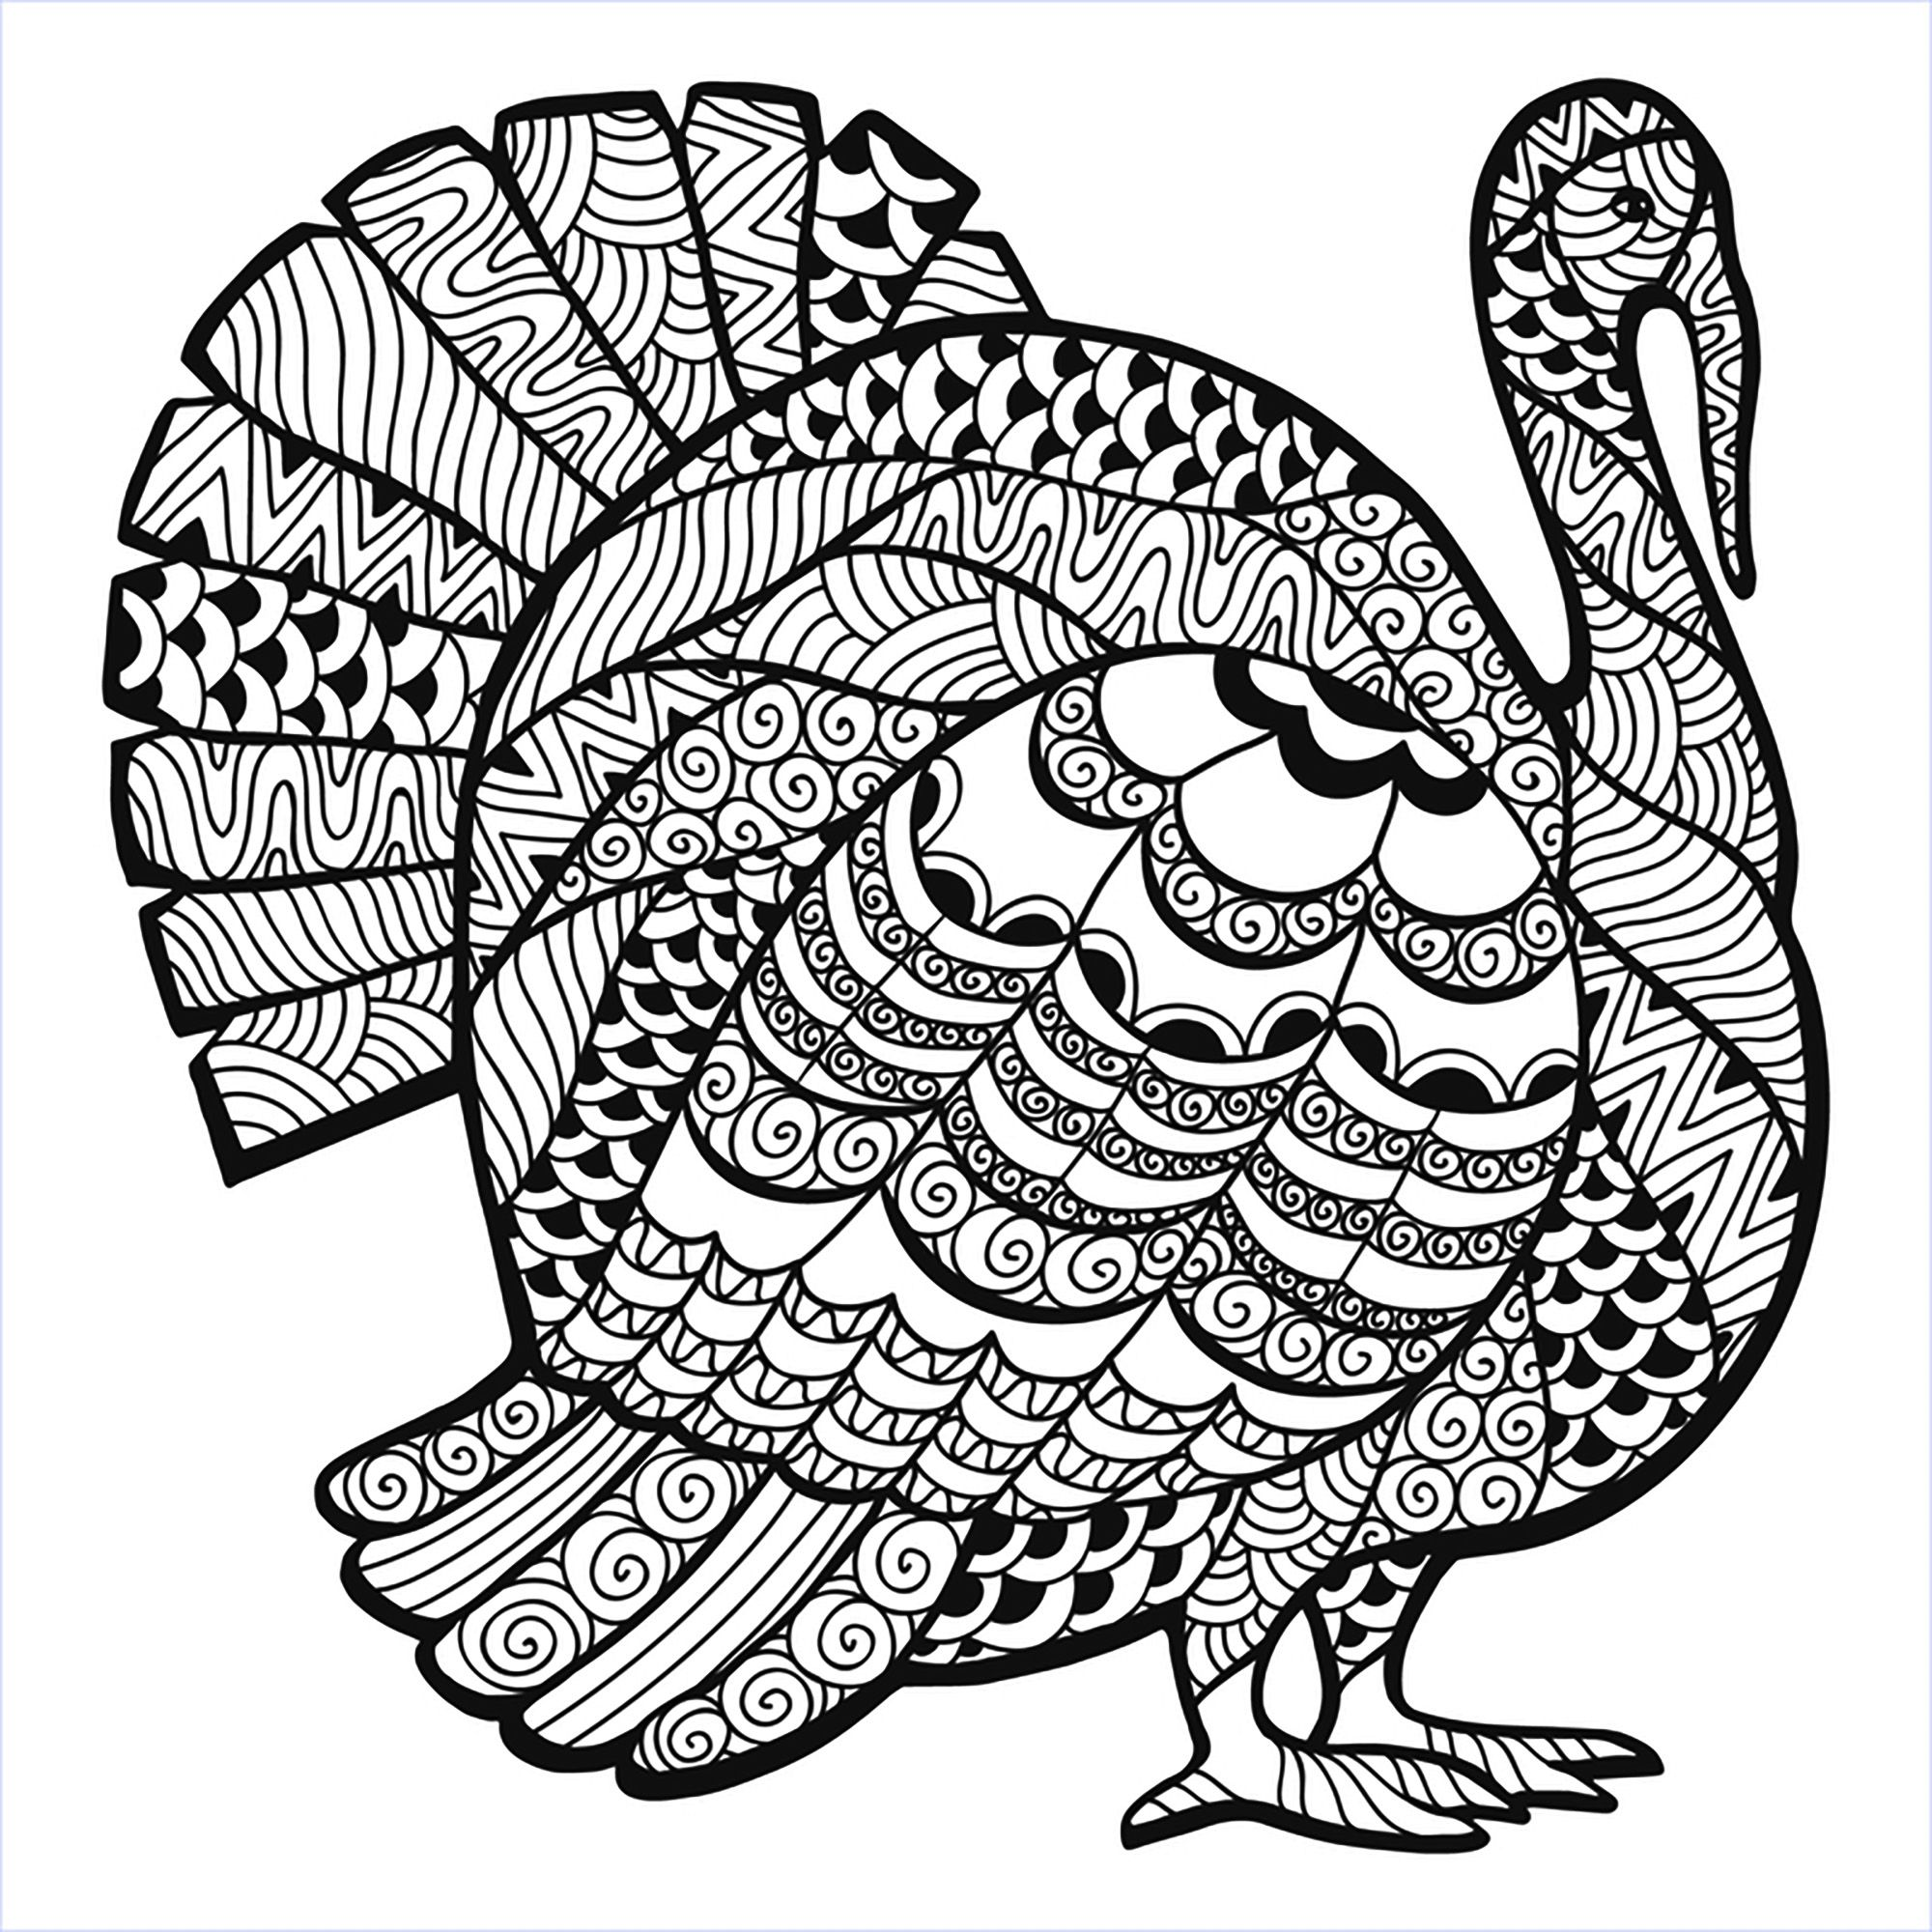 Free printable zentangle coloring pages for adults - Thanksgiving Turkey Zentangle Coloring Page From The Gallery Events Thanksgiving Artist Lena